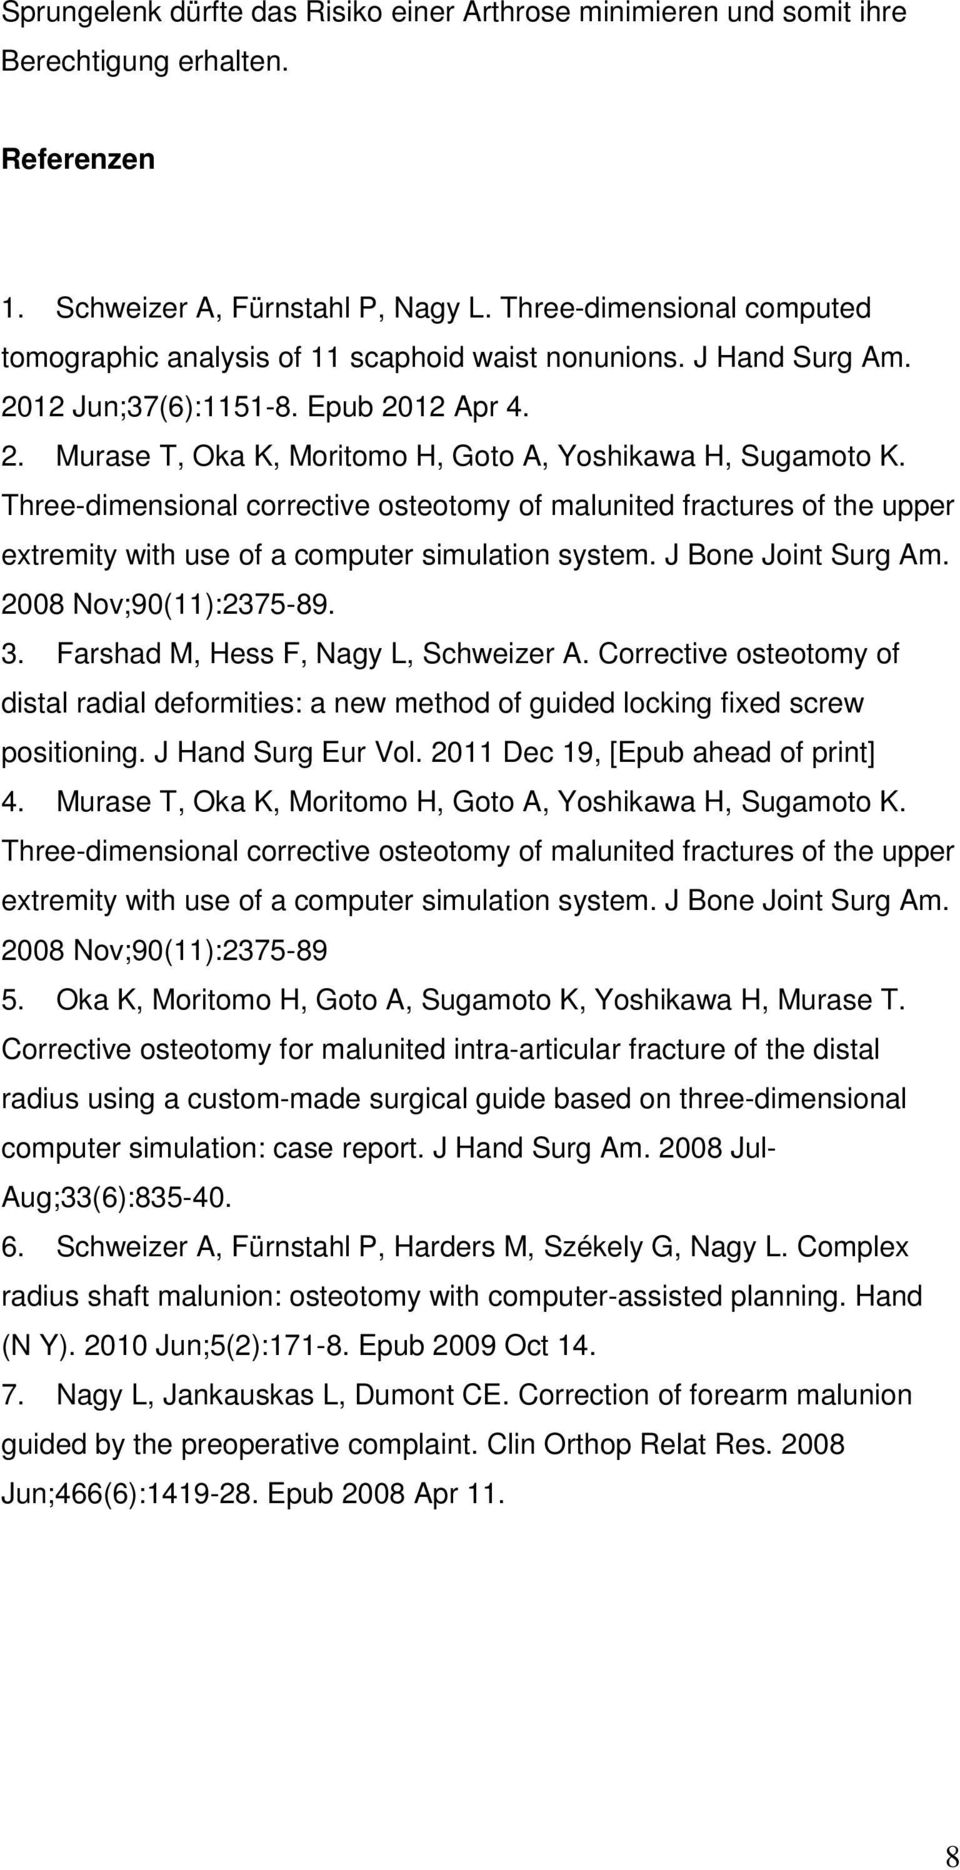 Three-dimensional corrective osteotomy of malunited fractures of the upper extremity with use of a computer simulation system. J Bone Joint Surg Am. 2008 Nov;90(11):2375-89. 3.